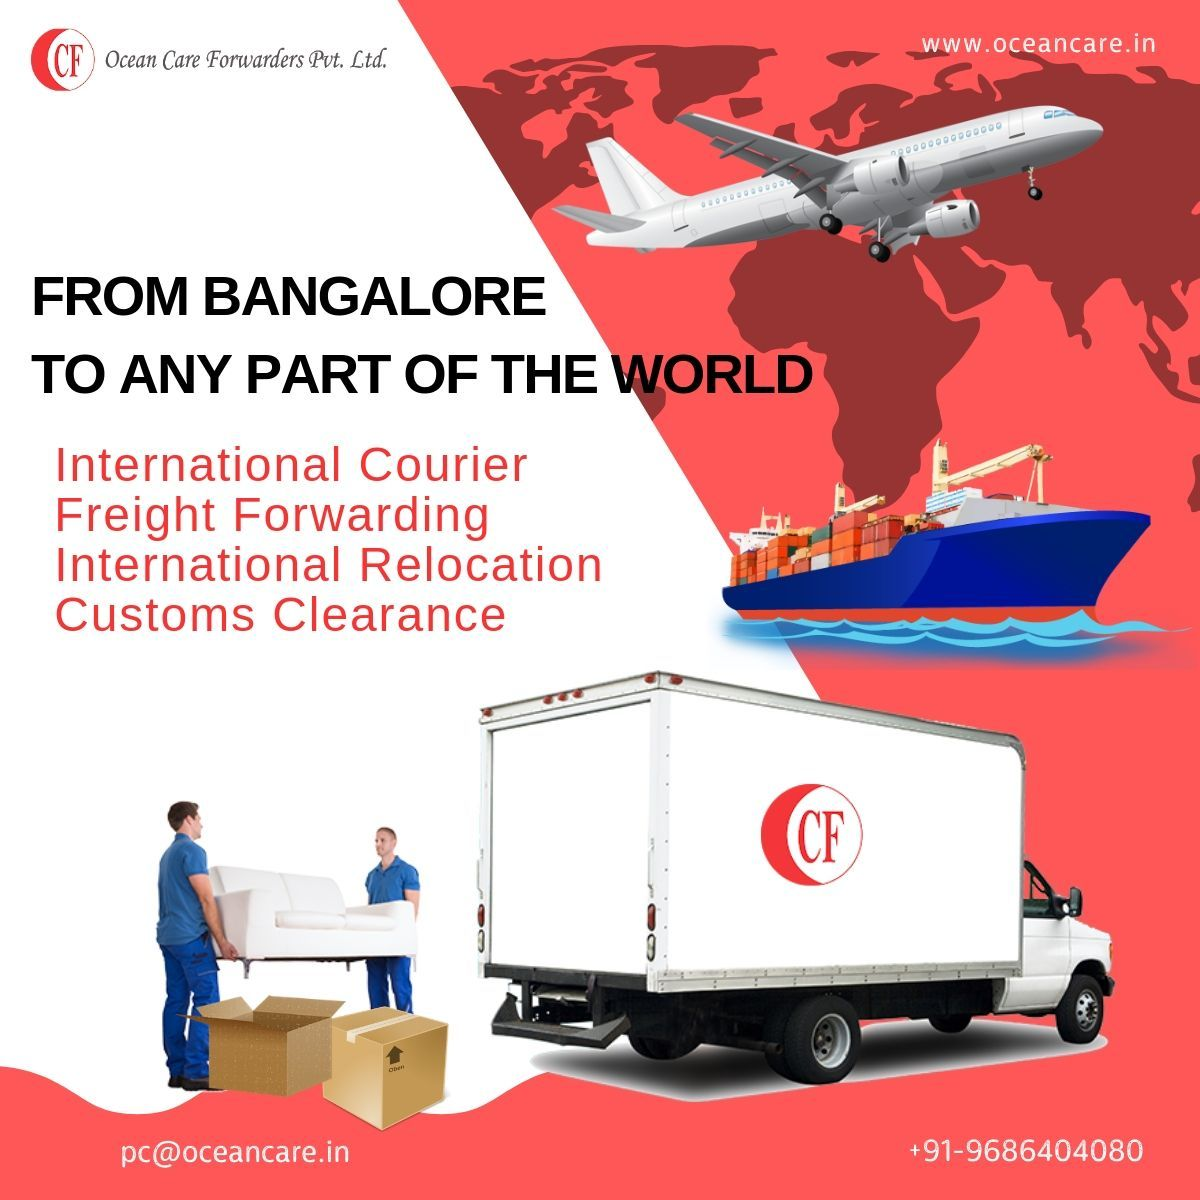 Forwarders Pvt. Ltd Relocation, Airfreight, Relocation